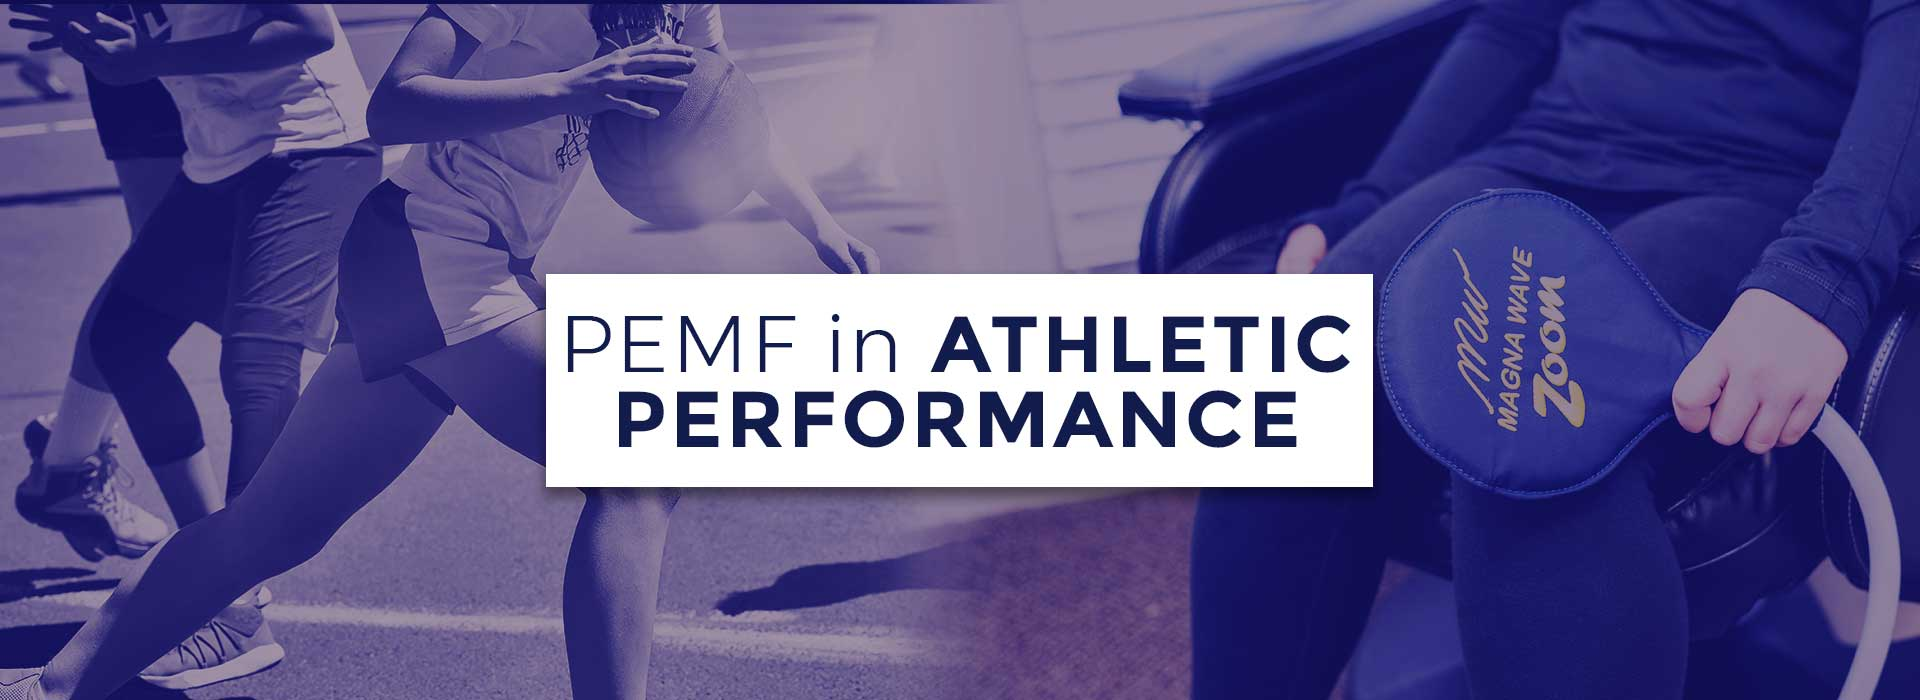 PEMF in Athletic Performance